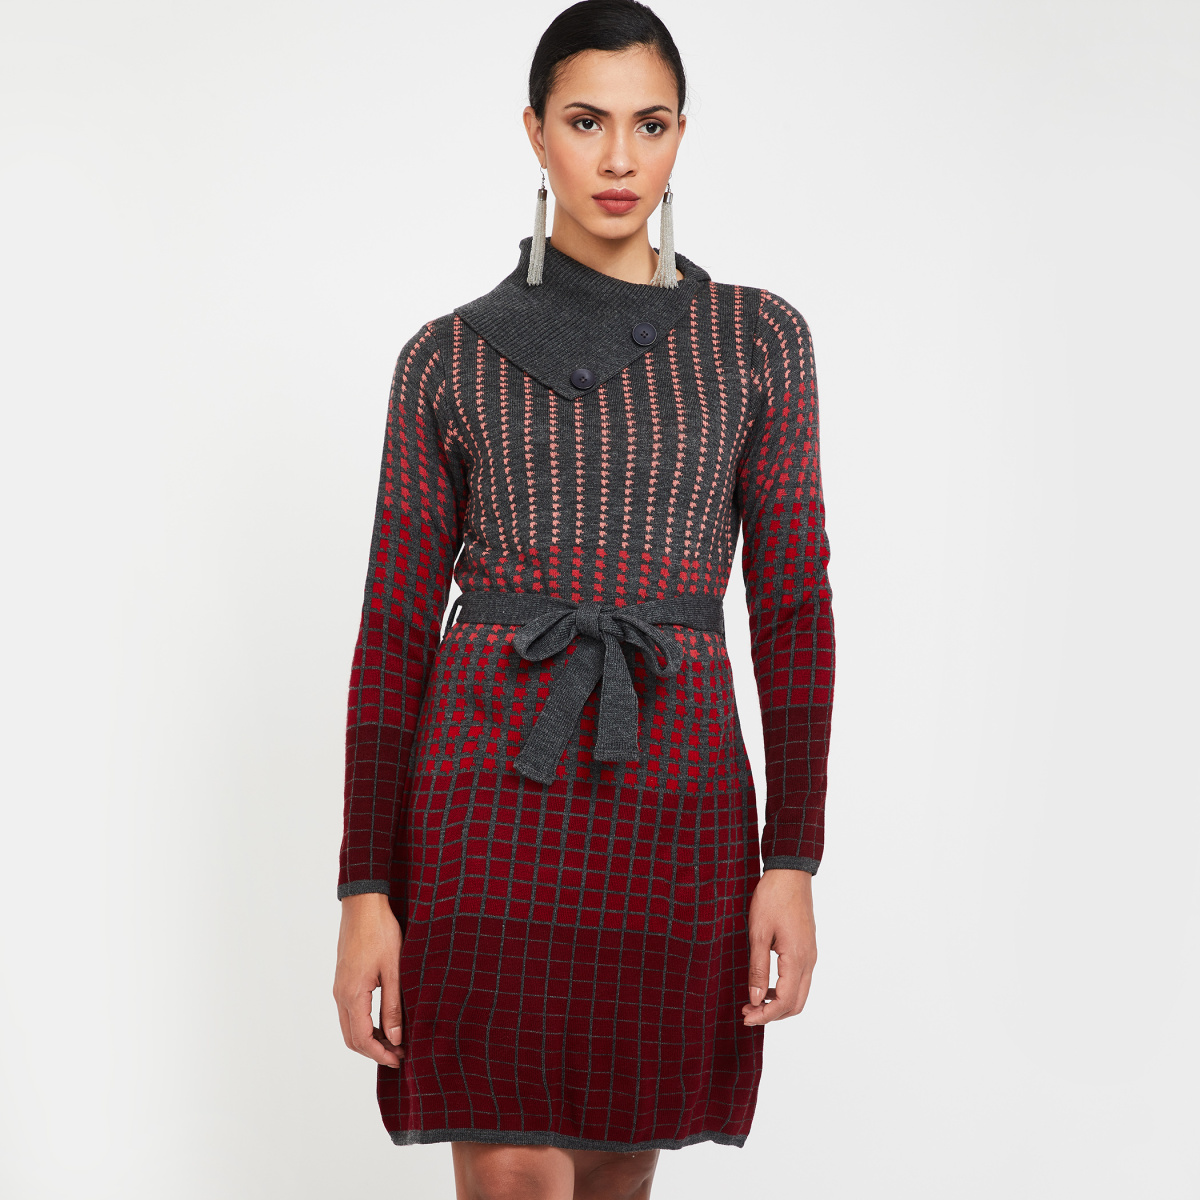 GLOBAL DESI Knitted Dress with Belt